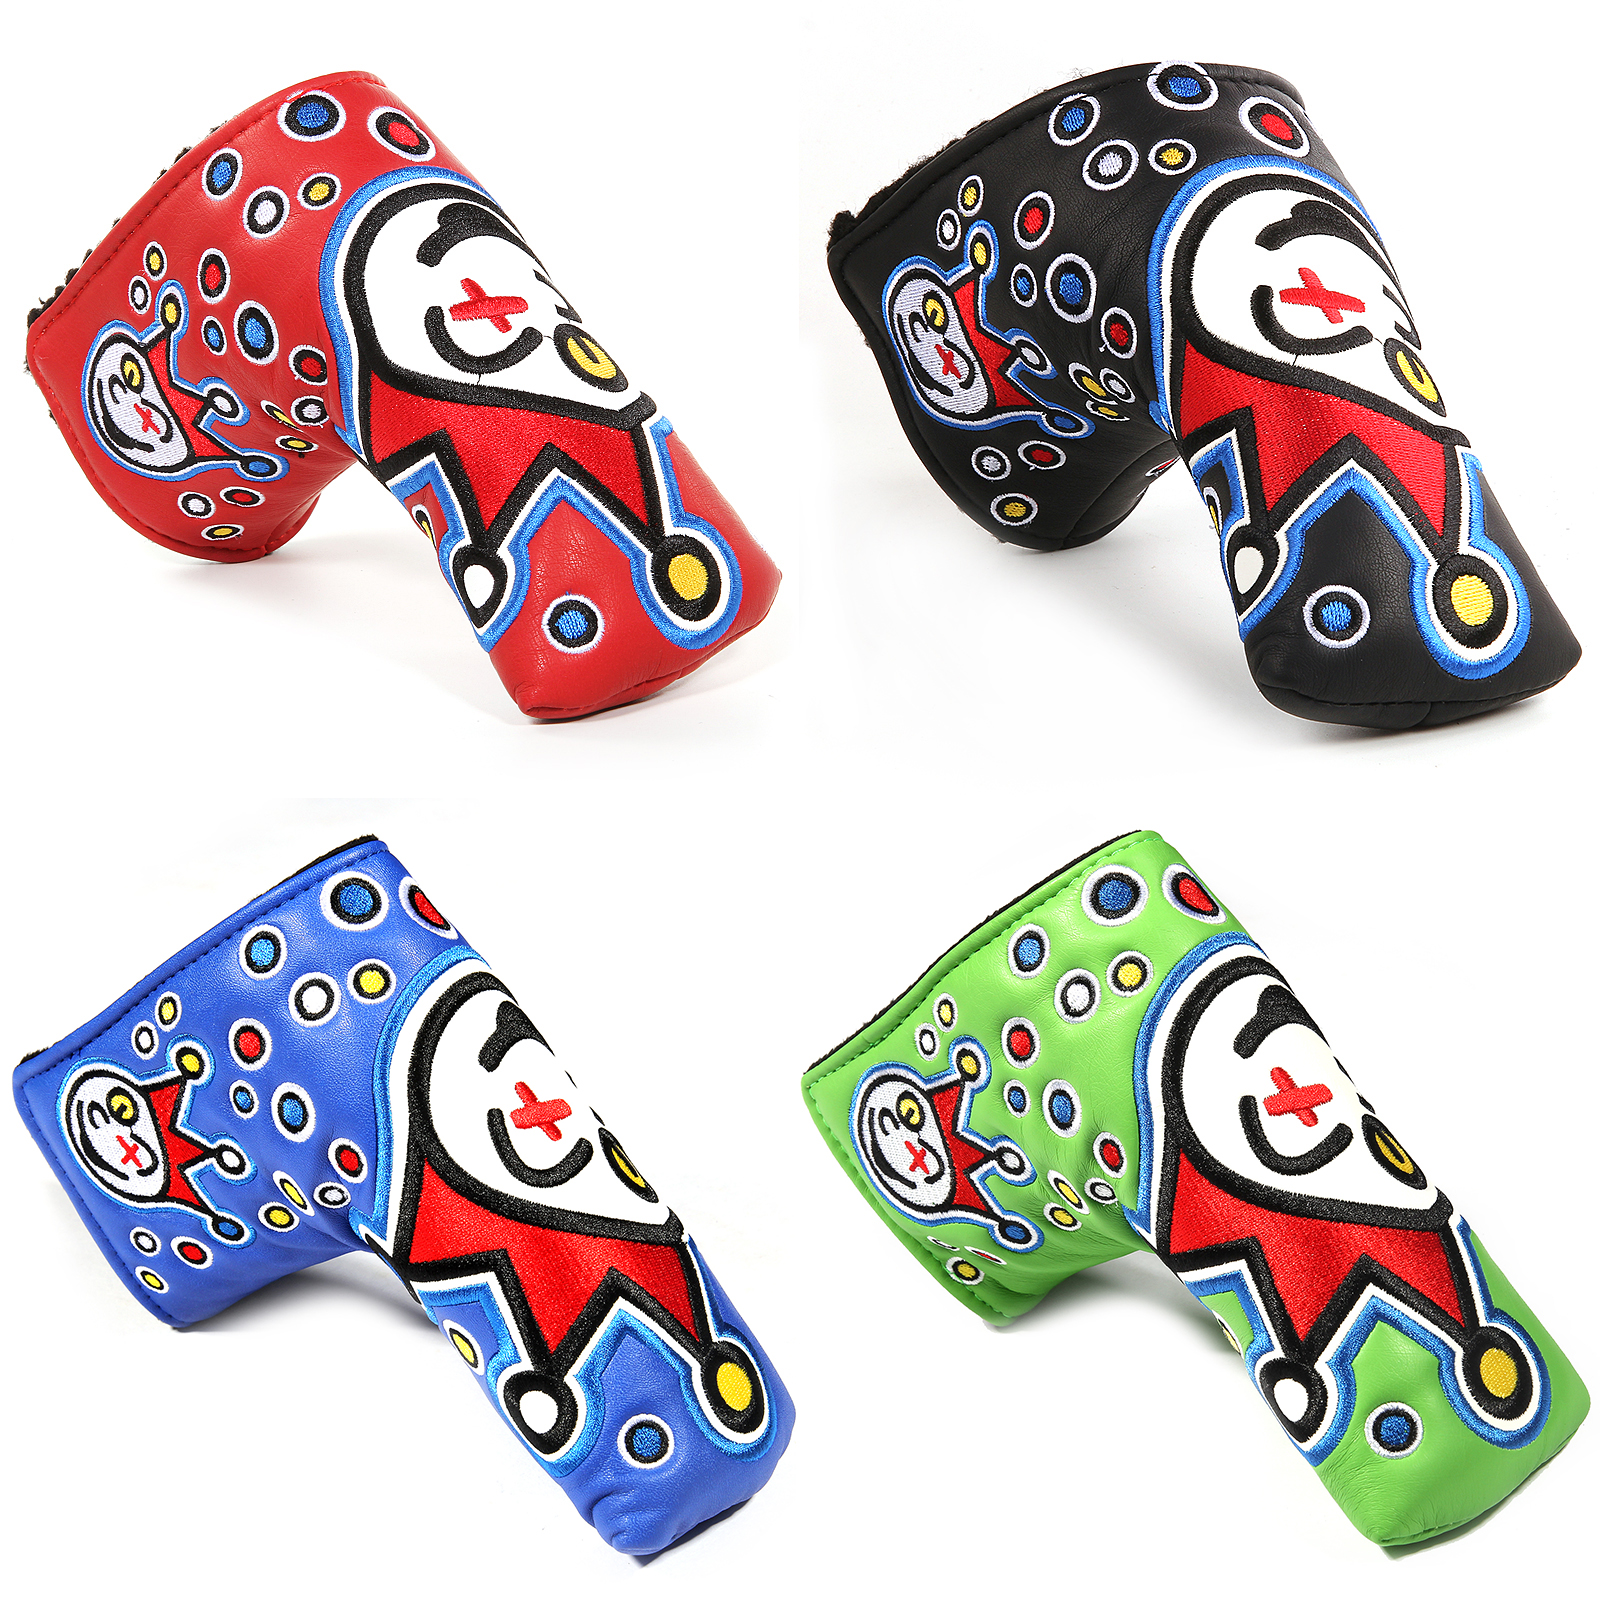 Golf Putter Clown Joker Cover PUTTER HEADCOVER Cameron Johnny Jackpot Blade Putter Scotty Headcovers Letter T Circle T